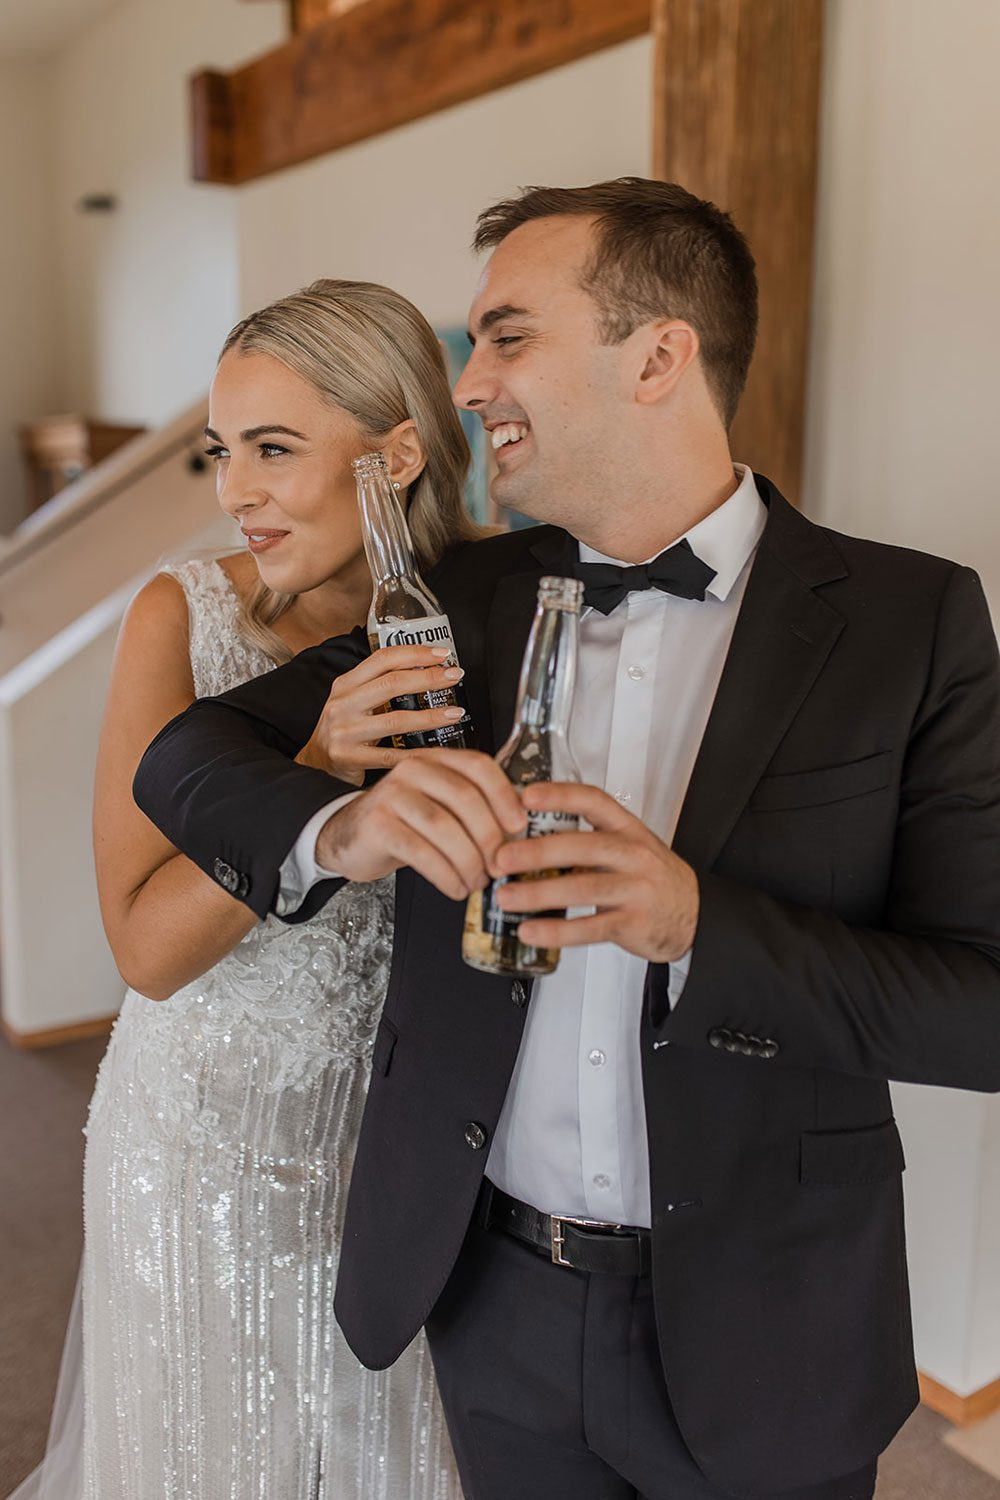 Bride wearing bespoke fitted V-neck gown in beaded lace with front split and sheer beaded overlay by Vinka bridal boutique NZ- having a drink with groom